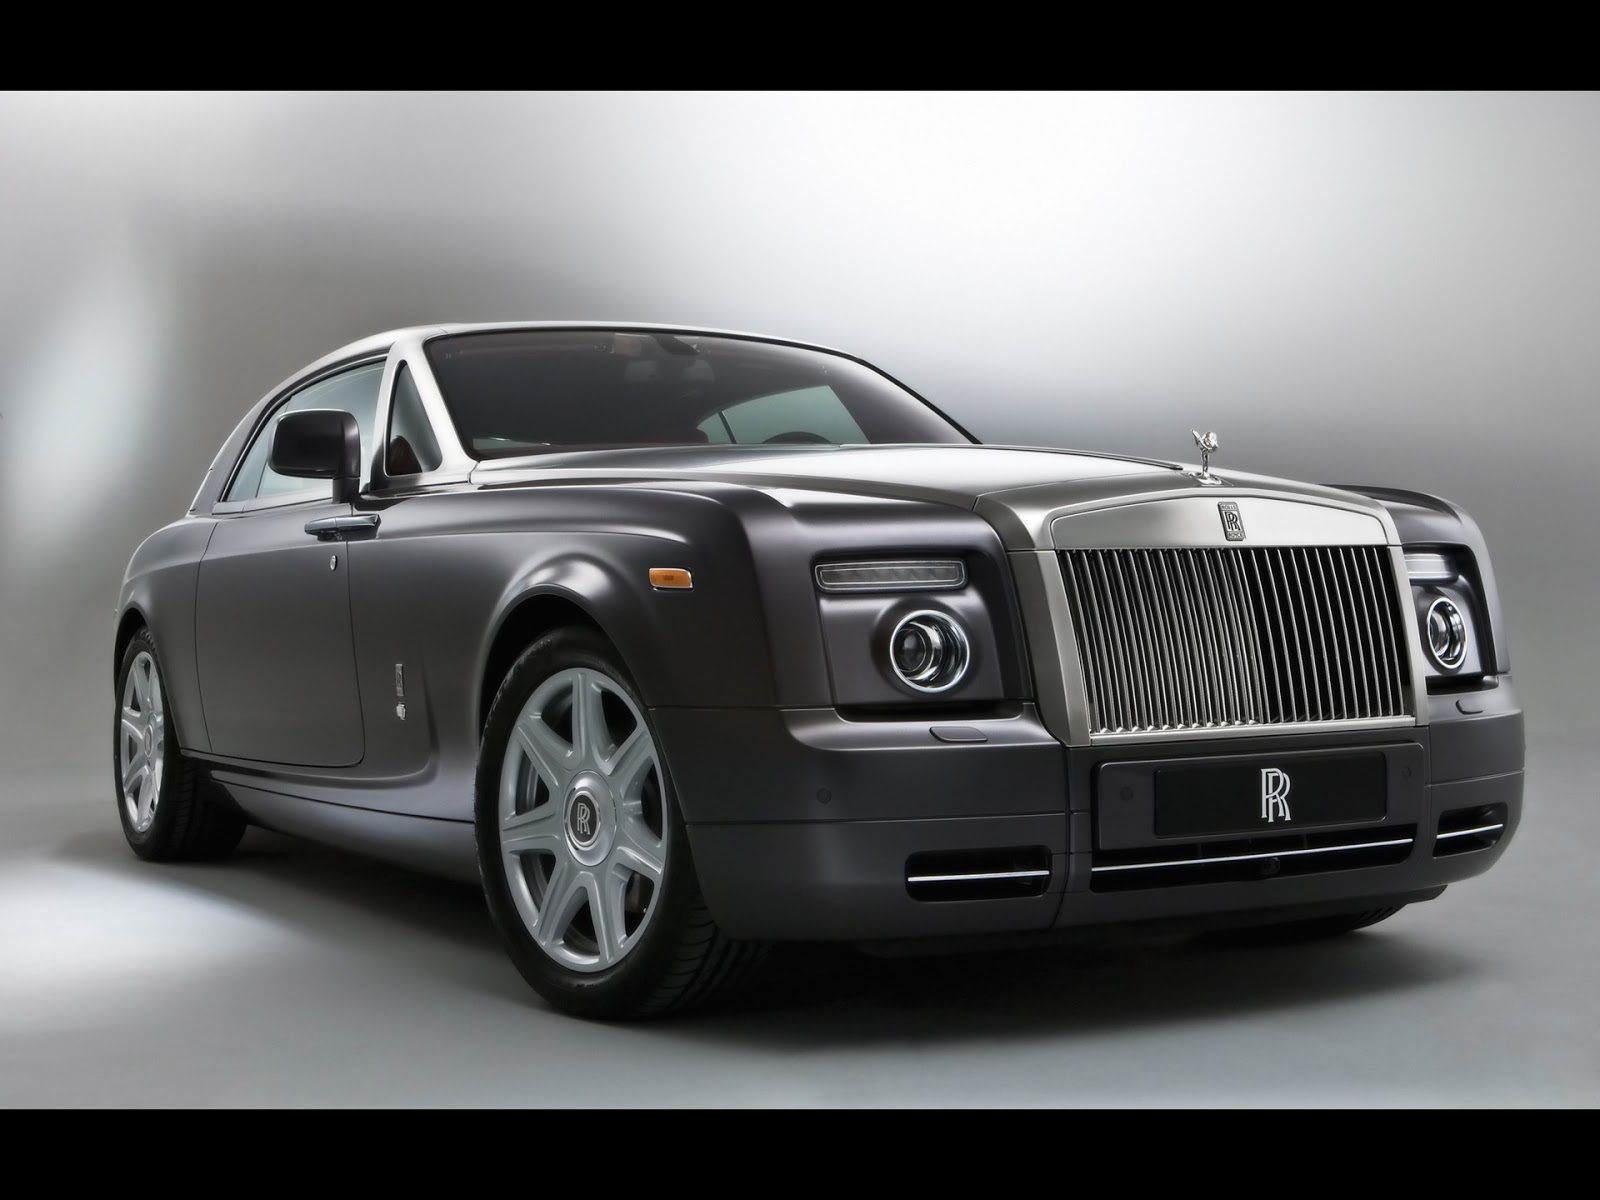 World4Car: Rolls Royce Phantom Information and Wallpaper